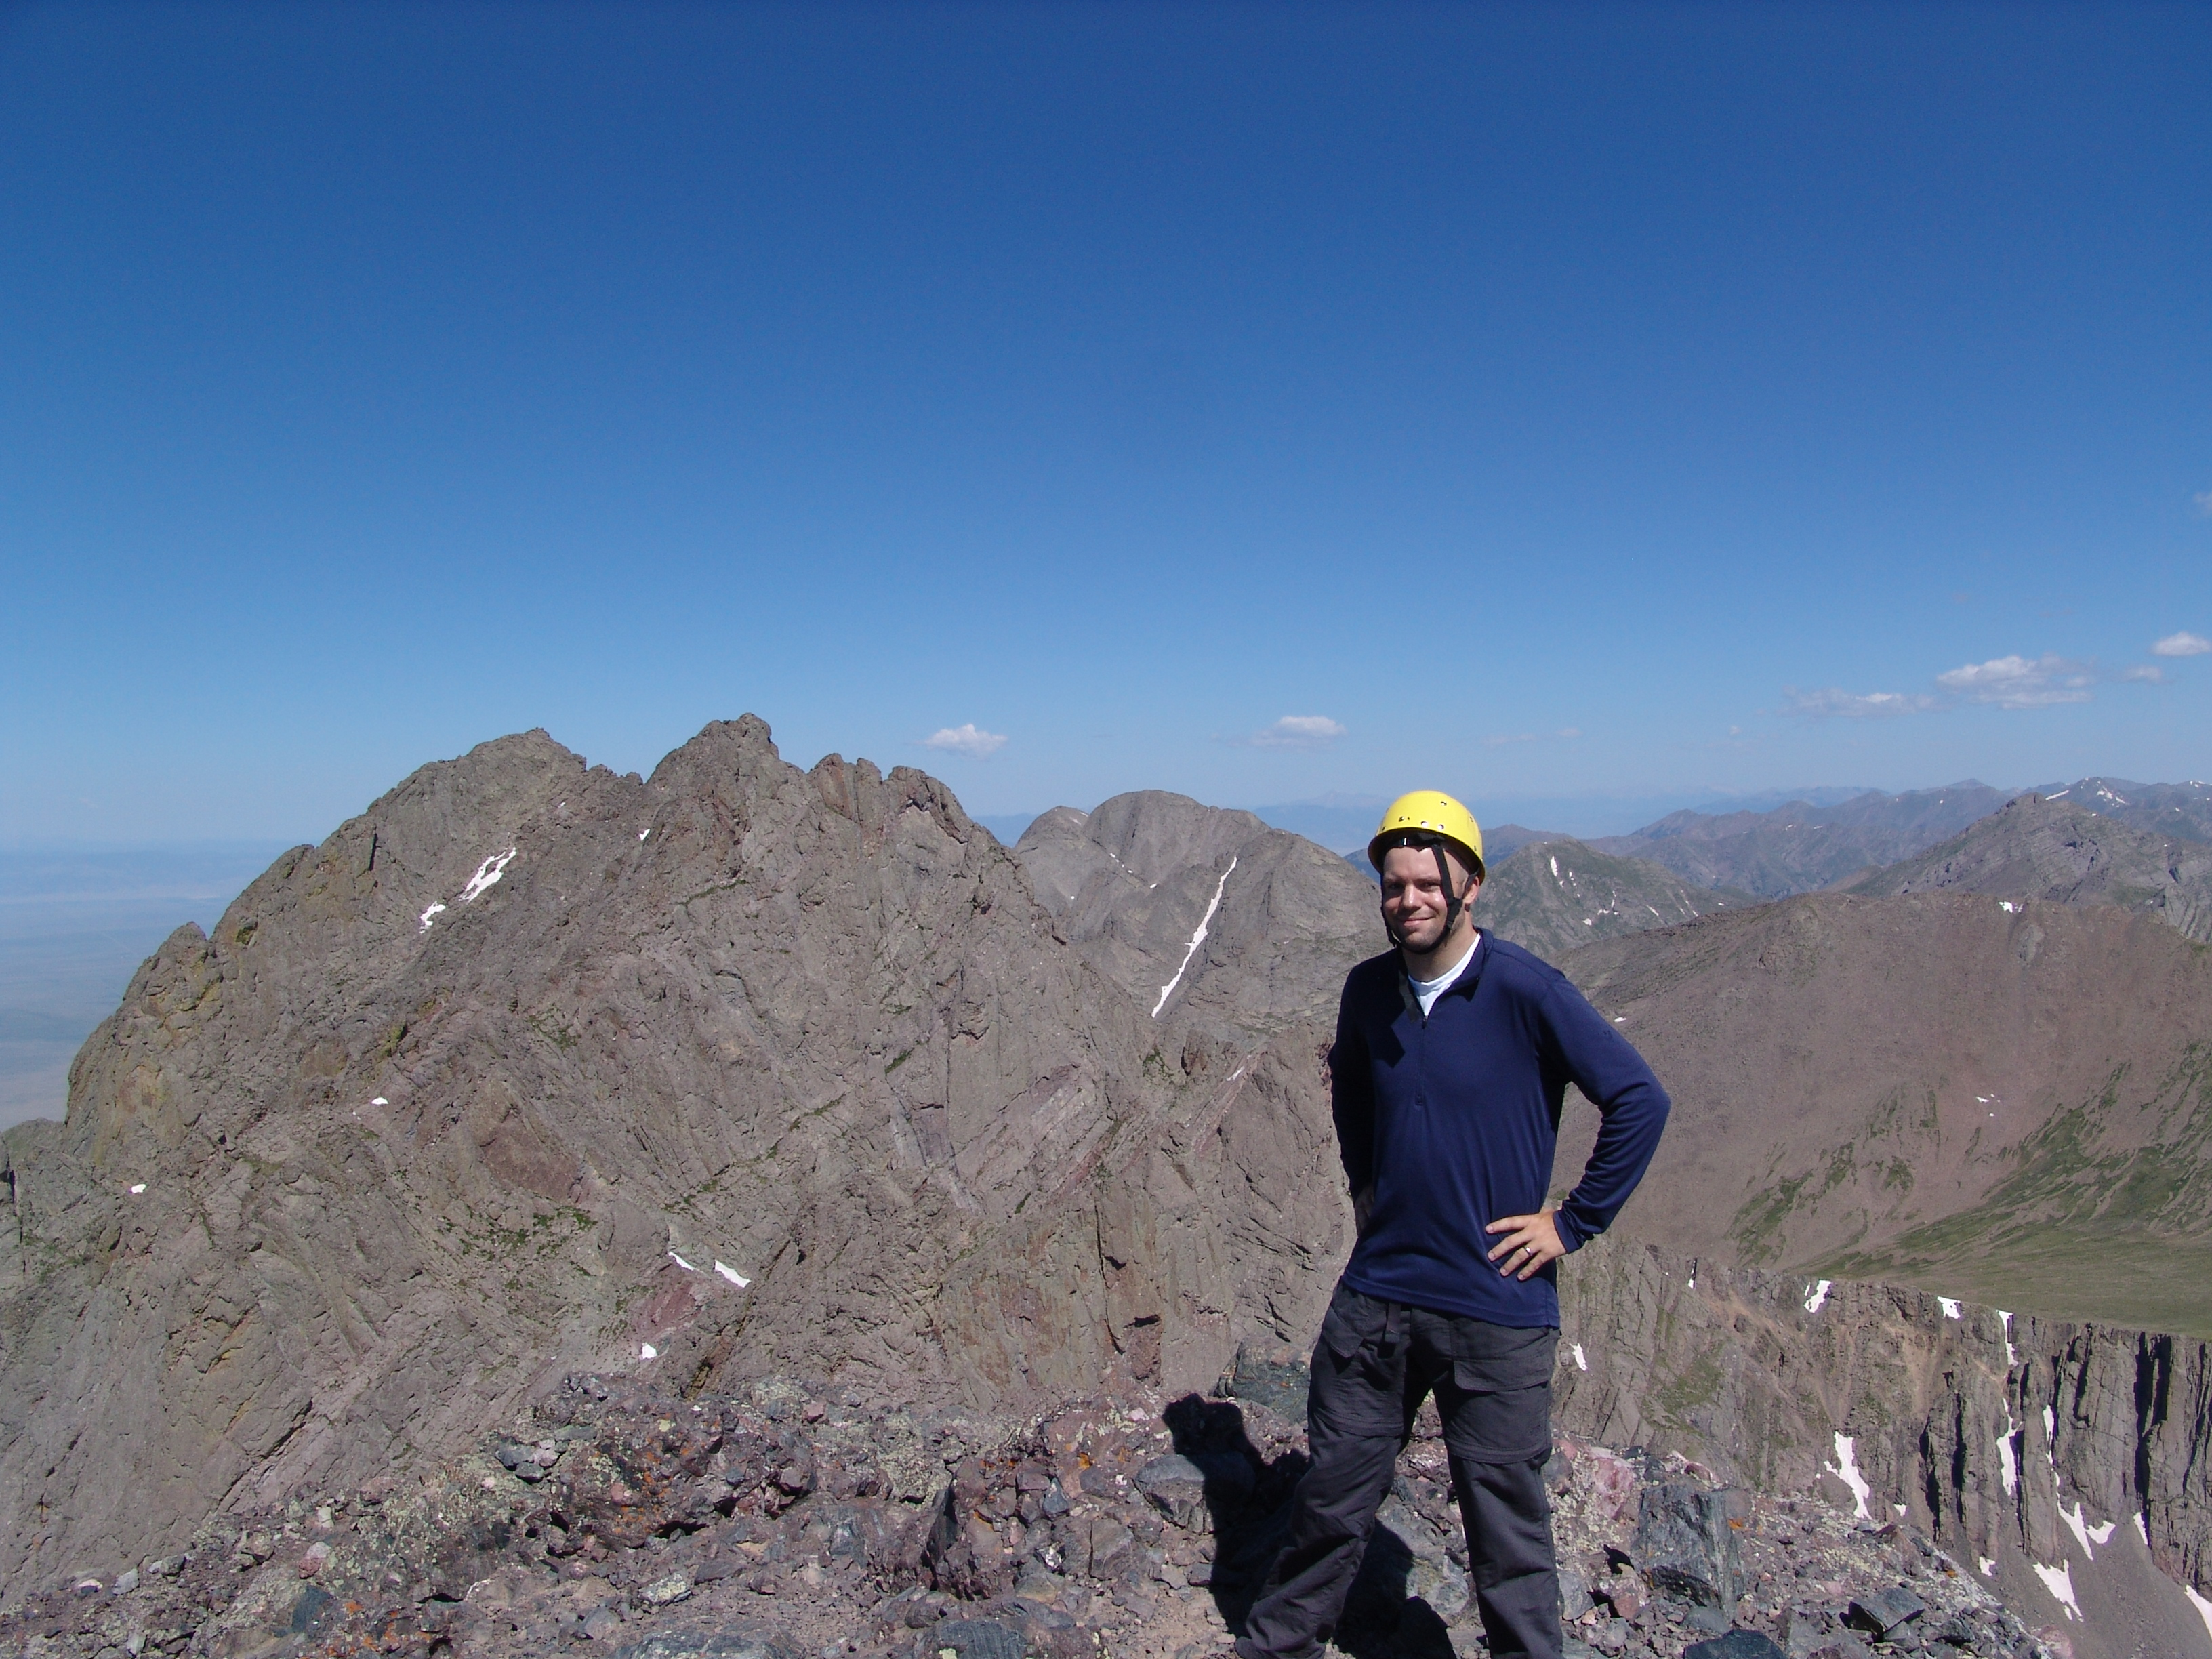 Matt Payne on Crestone Needle Summit